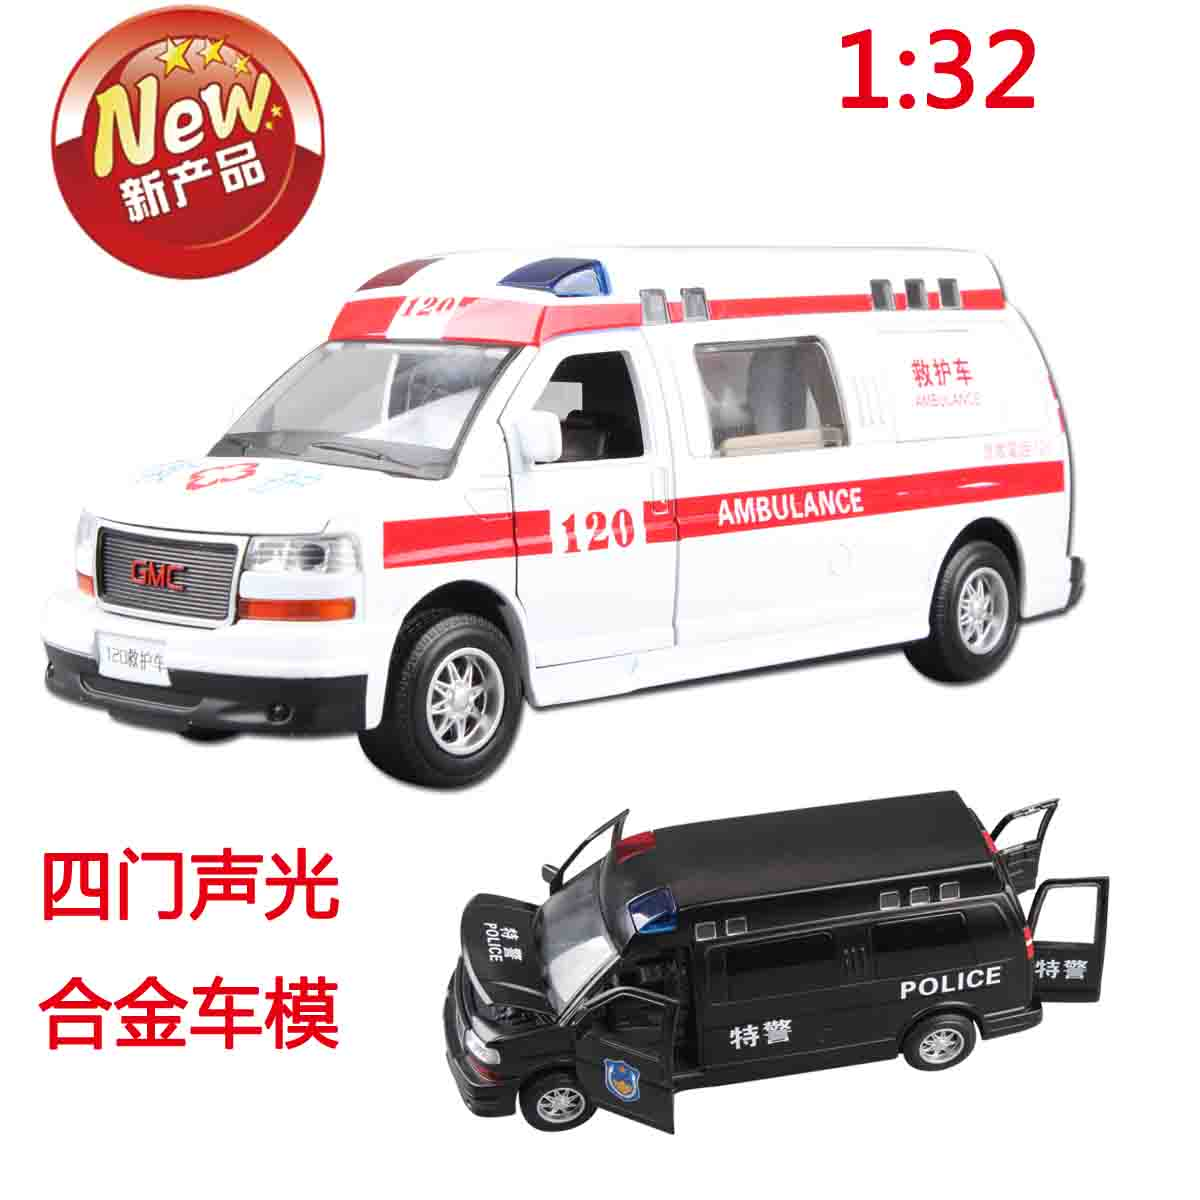 Shenghui 1: 32GMC junichiro koizumi commerce hong kong flying tigers police car toy police car alloy car model children's toy car